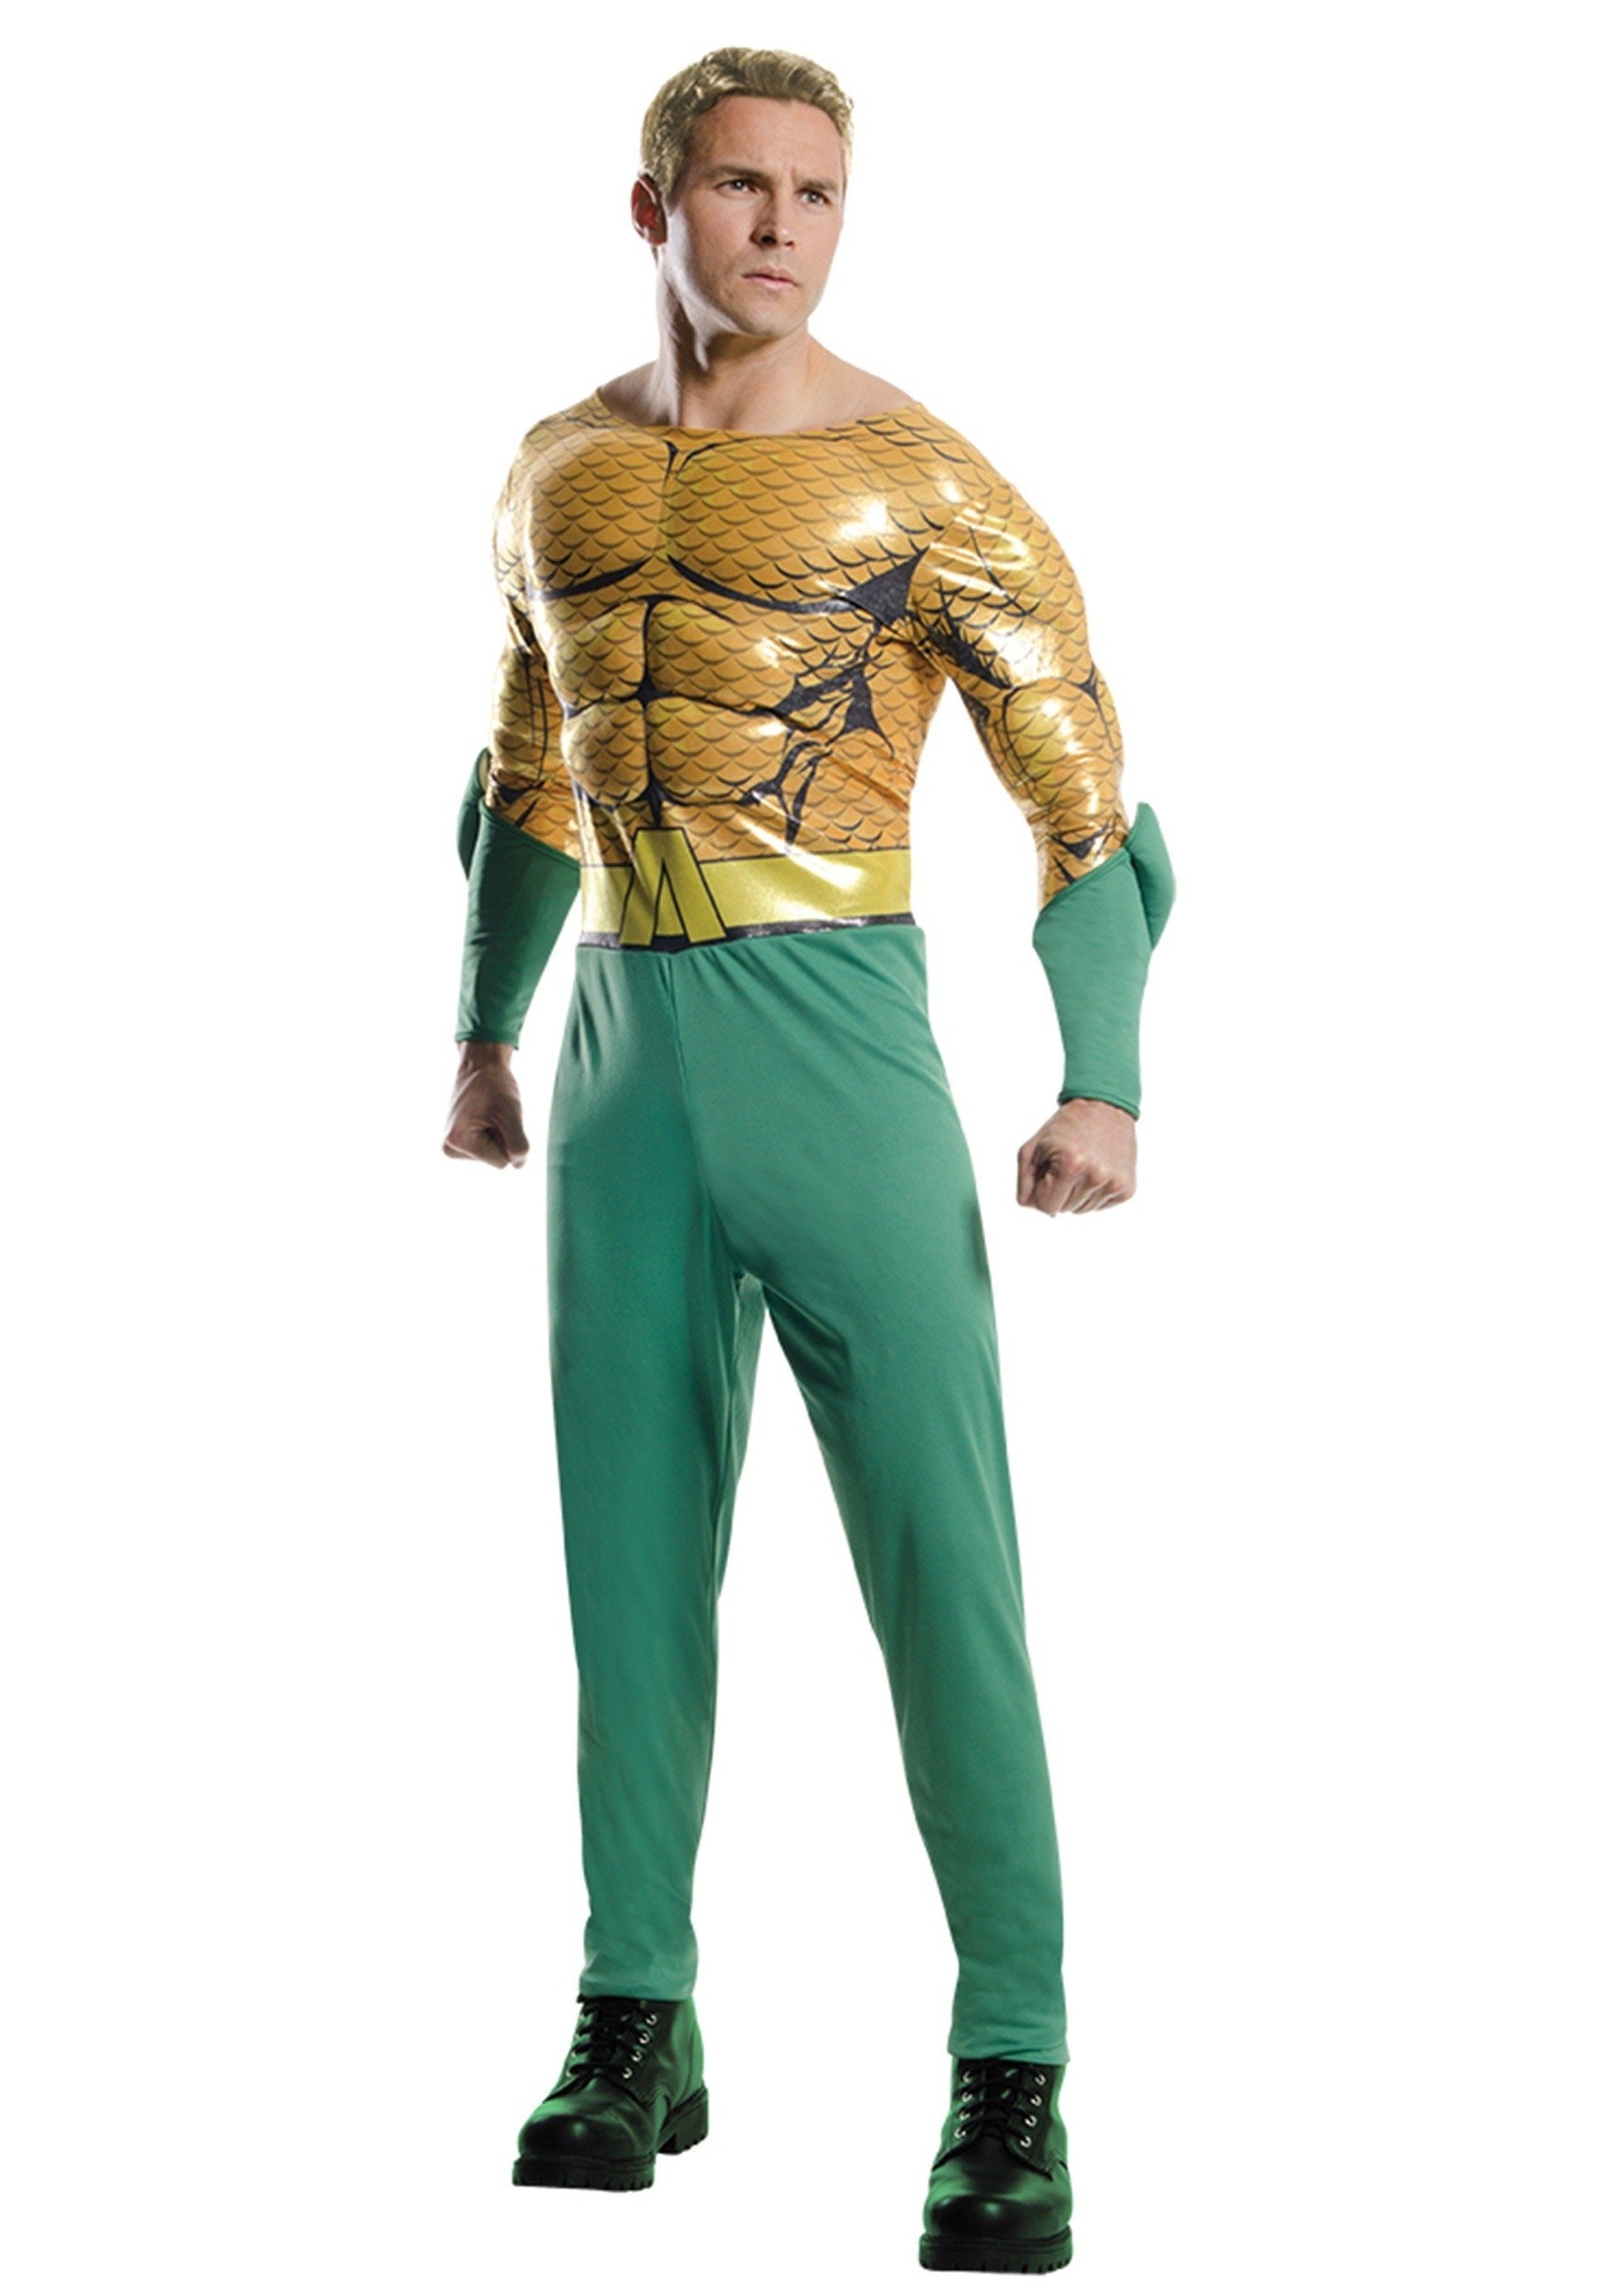 10 Stunning Halloween Costumes For Men Ideas mens aquaman costume 2020